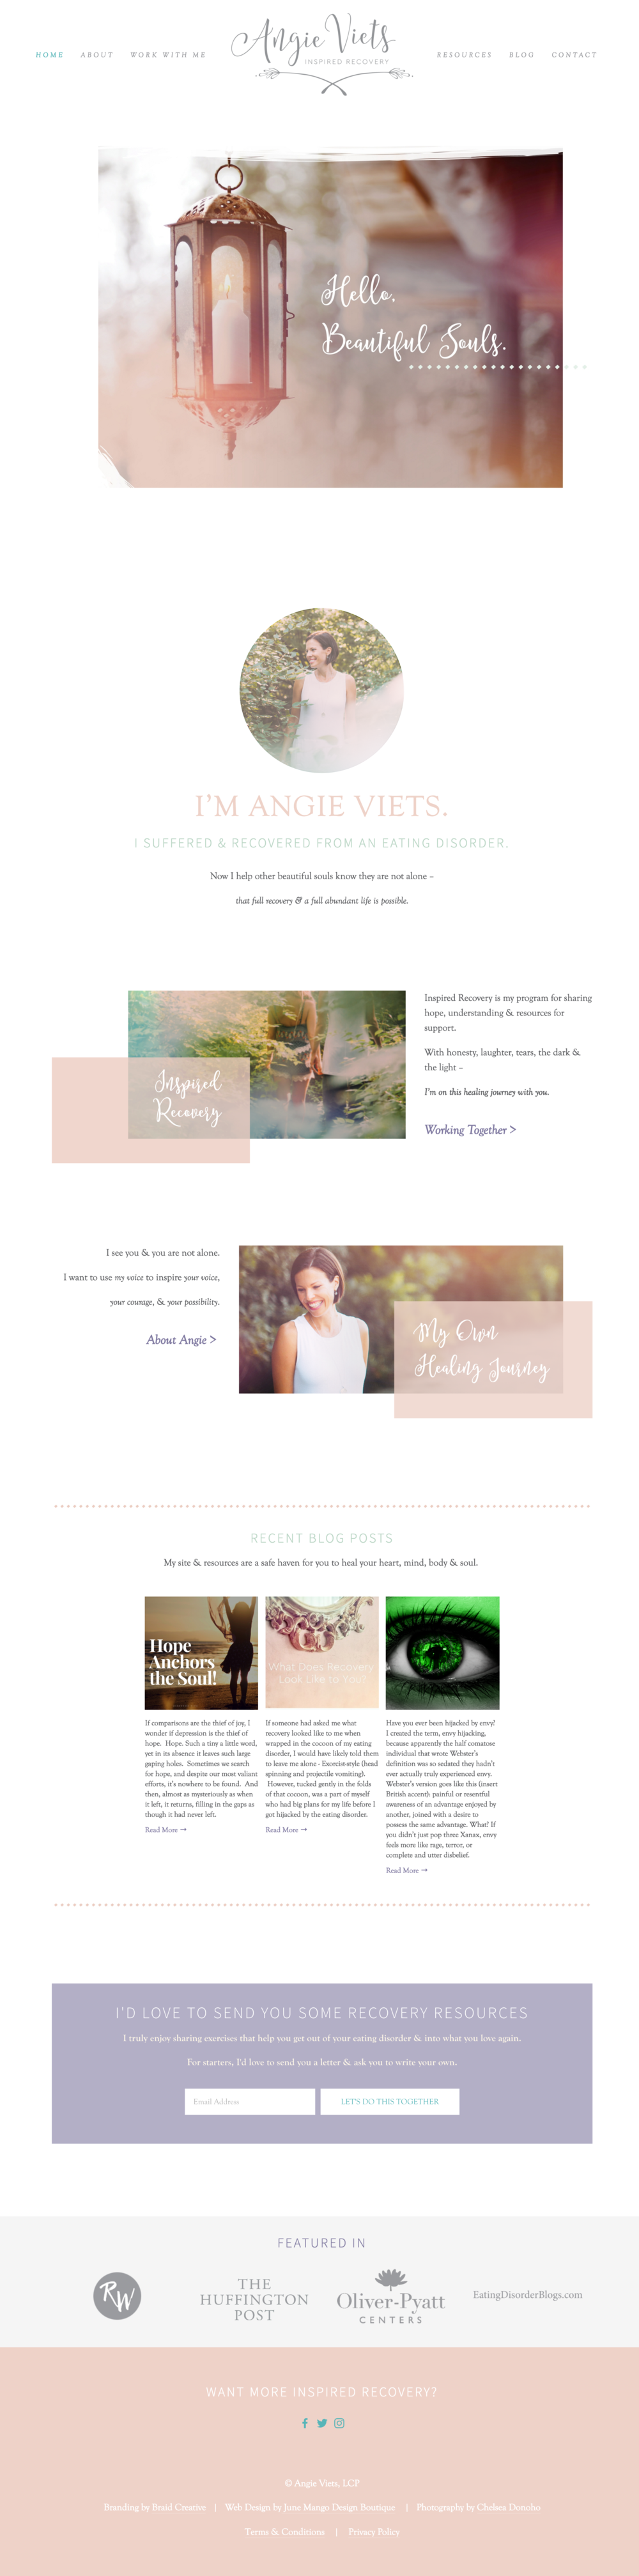 angie-viets-eating-disorder-psychotherapy-web-design.png